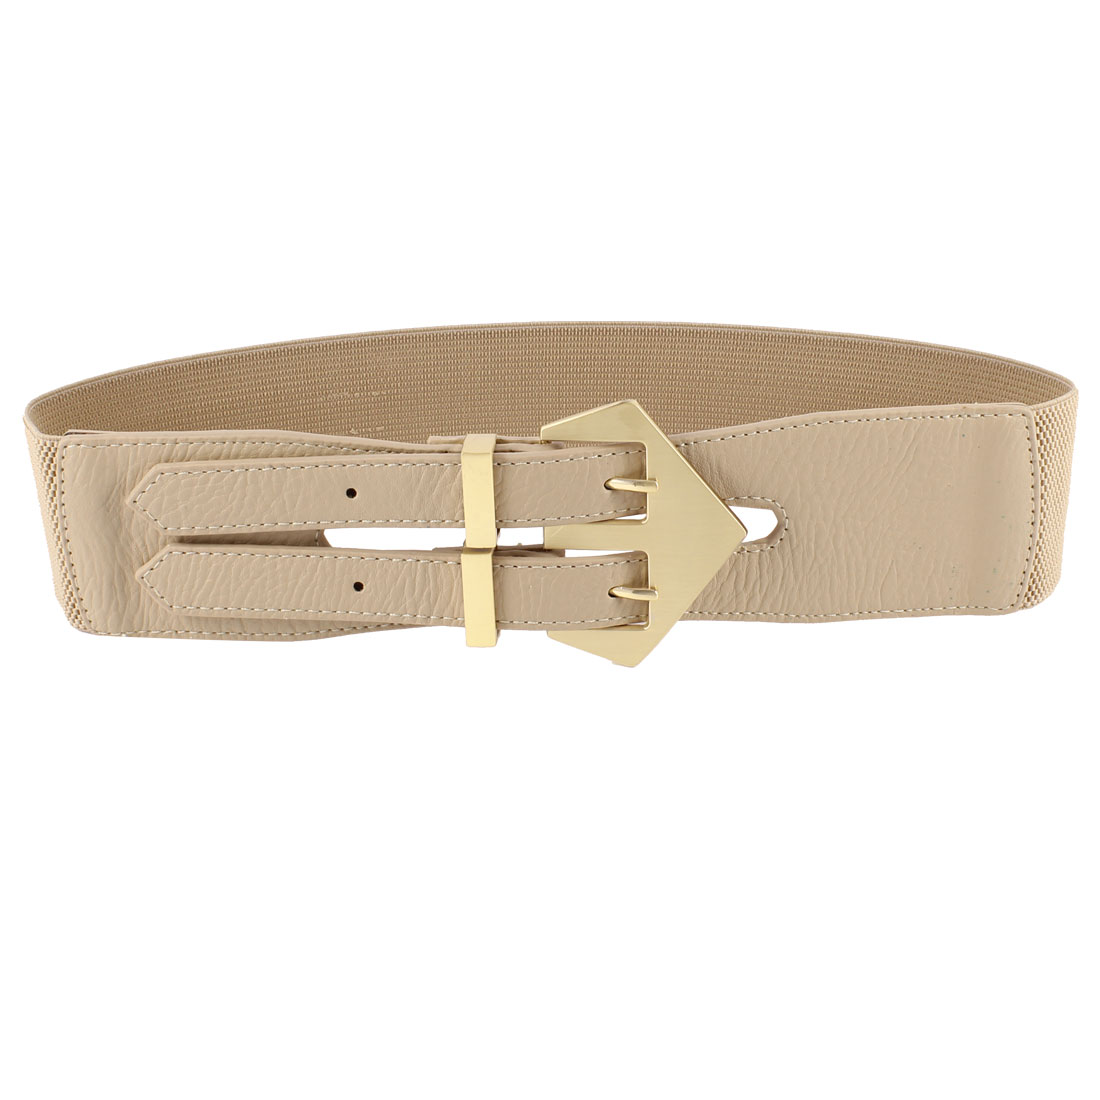 Khaki Double Pin Buckle Faux Leather Elastic Cinch Dress Belt for Women